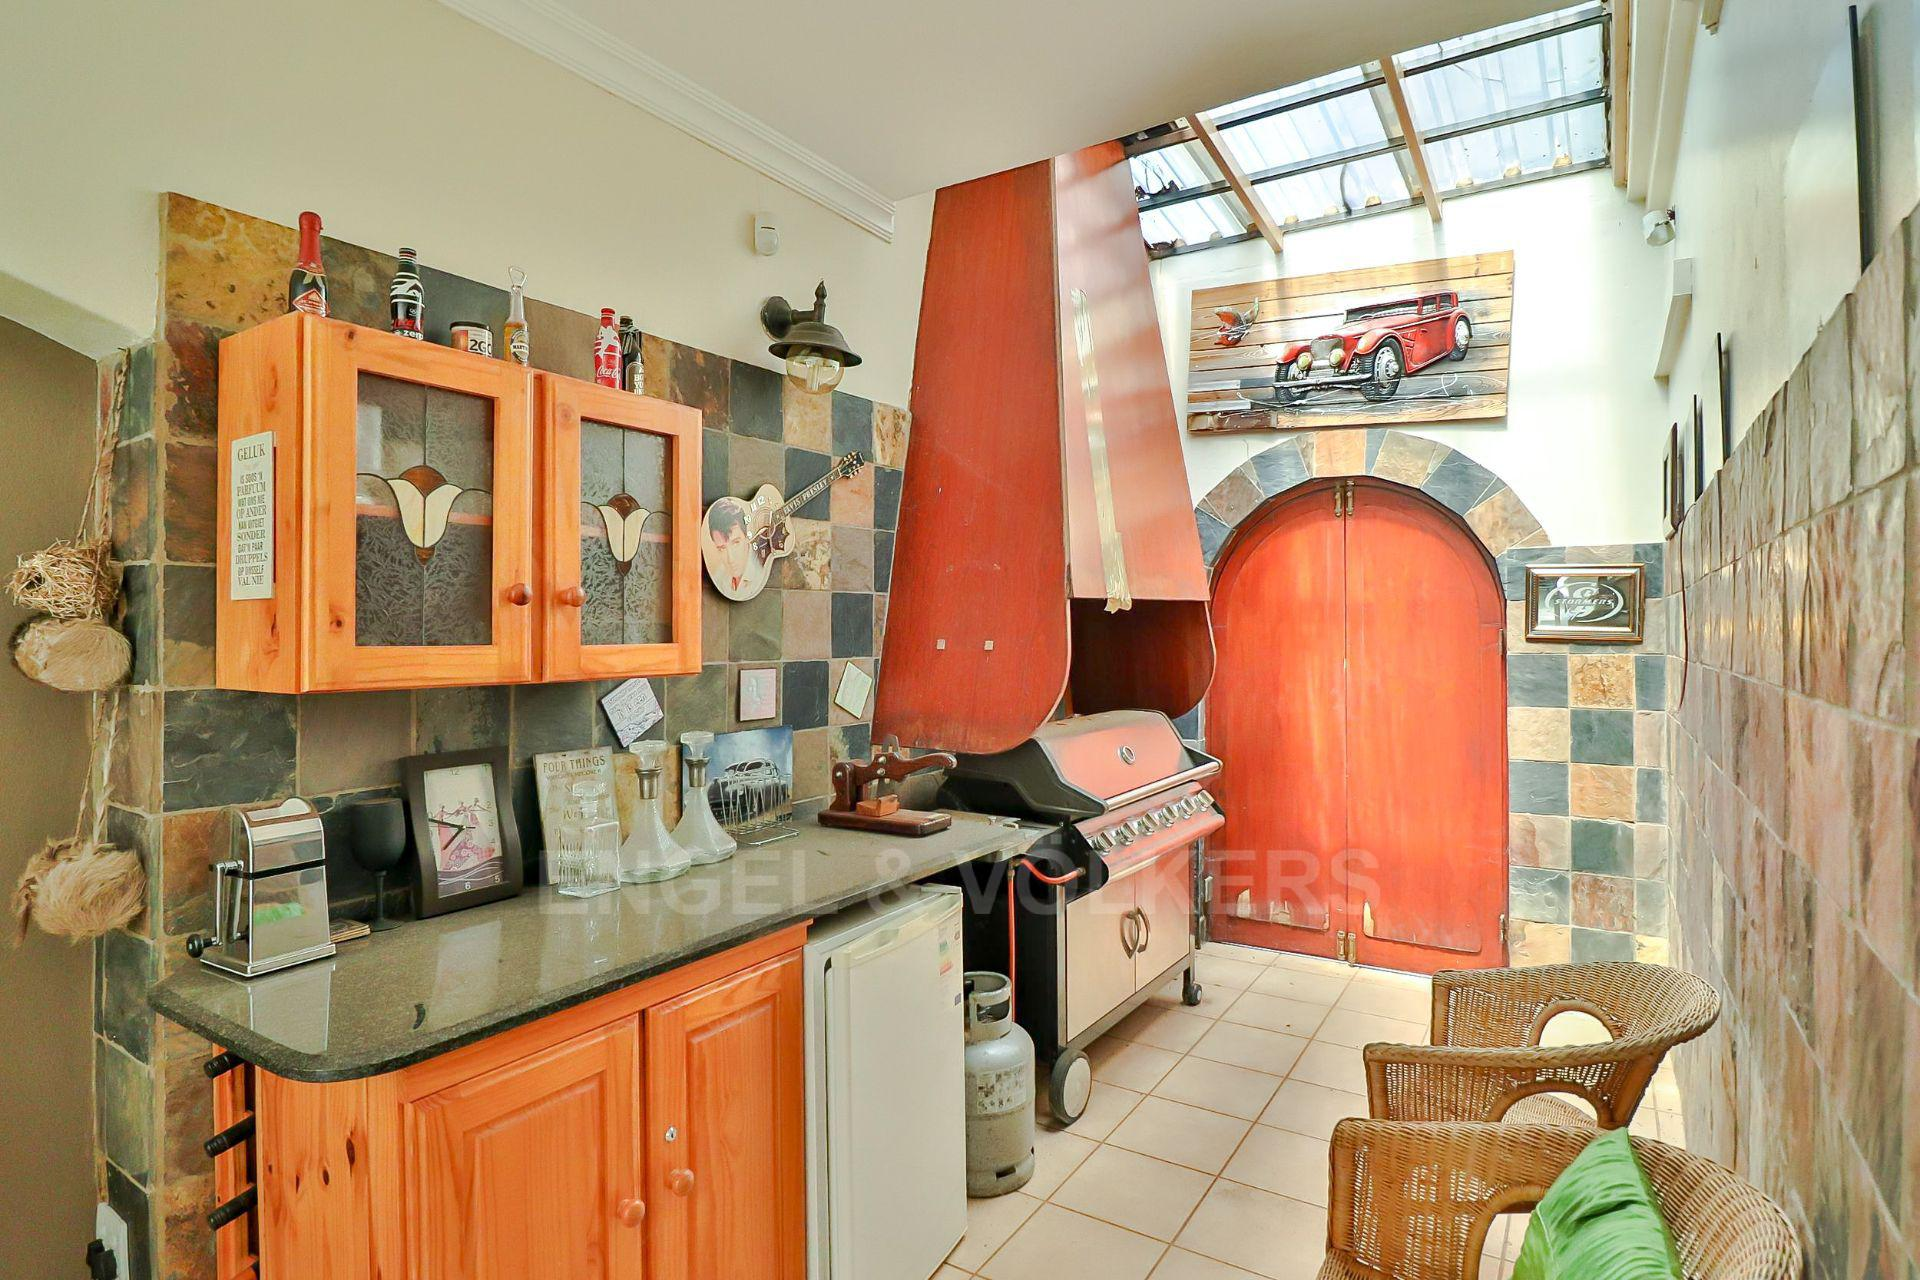 House in Ifafi - Gas braai area